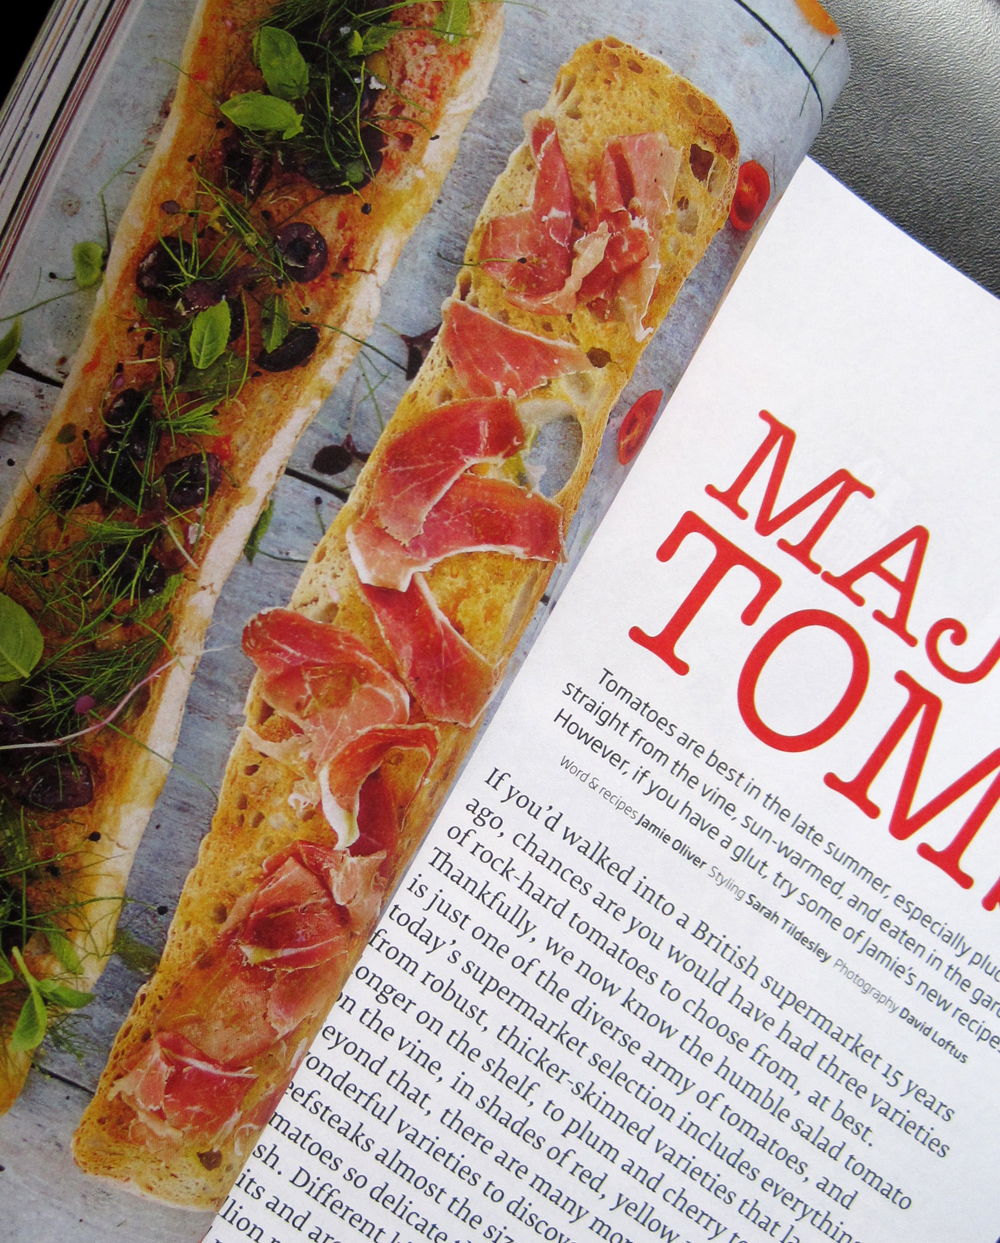 Jamie Oliver Magazine recipe inside the magazine